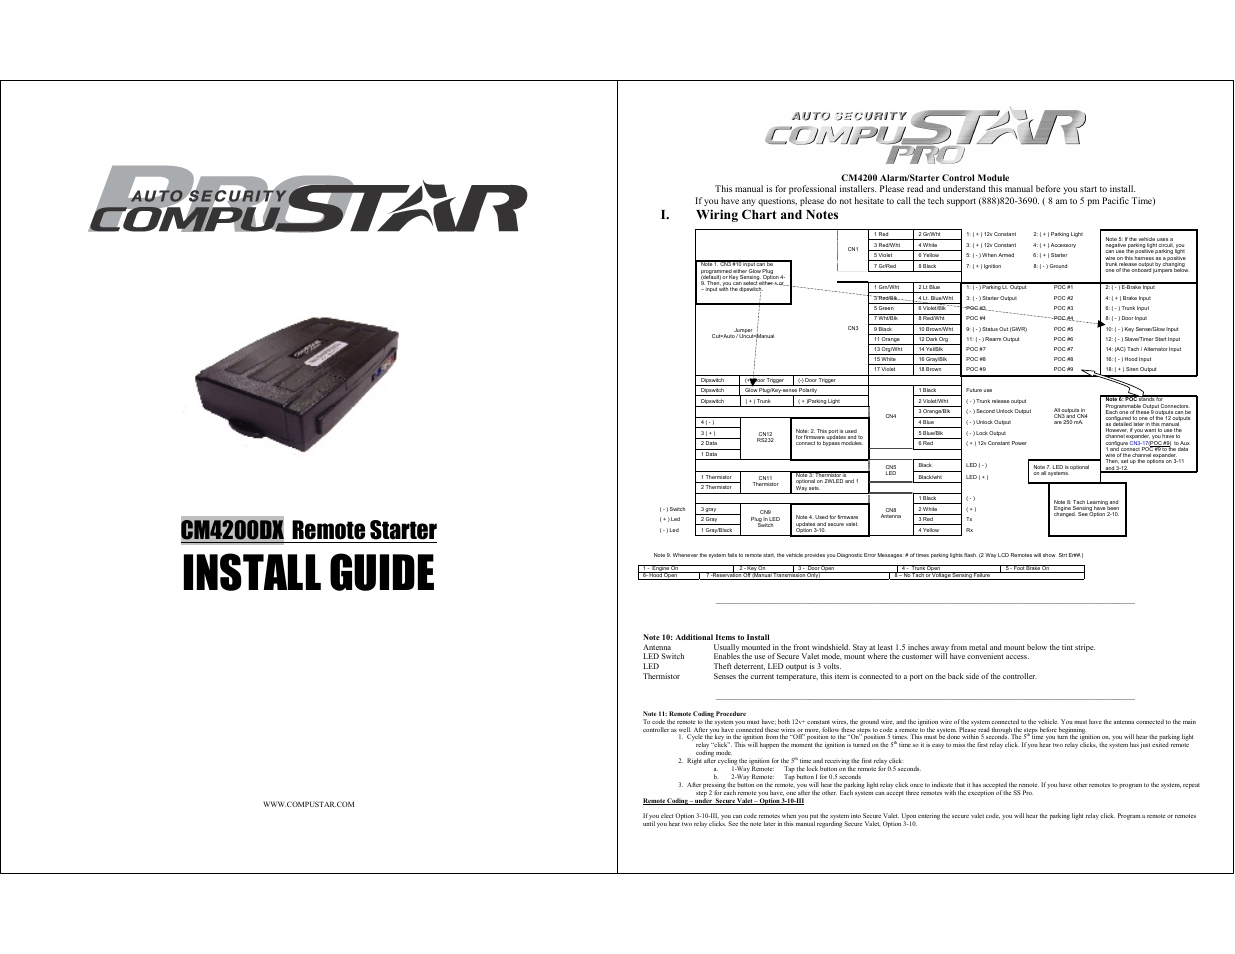 Viper Led 2 Way Security And Remote Start System in addition Ca 2000 together with Watch likewise 2011 Ford F150 Wiring Diagram Alarm Remote Starter 1052 together with User manual installation guide operation description keyless entry BIGHAWKS K902 8113 M602 manual car alarm system AMB004300. on viper remote starter manual